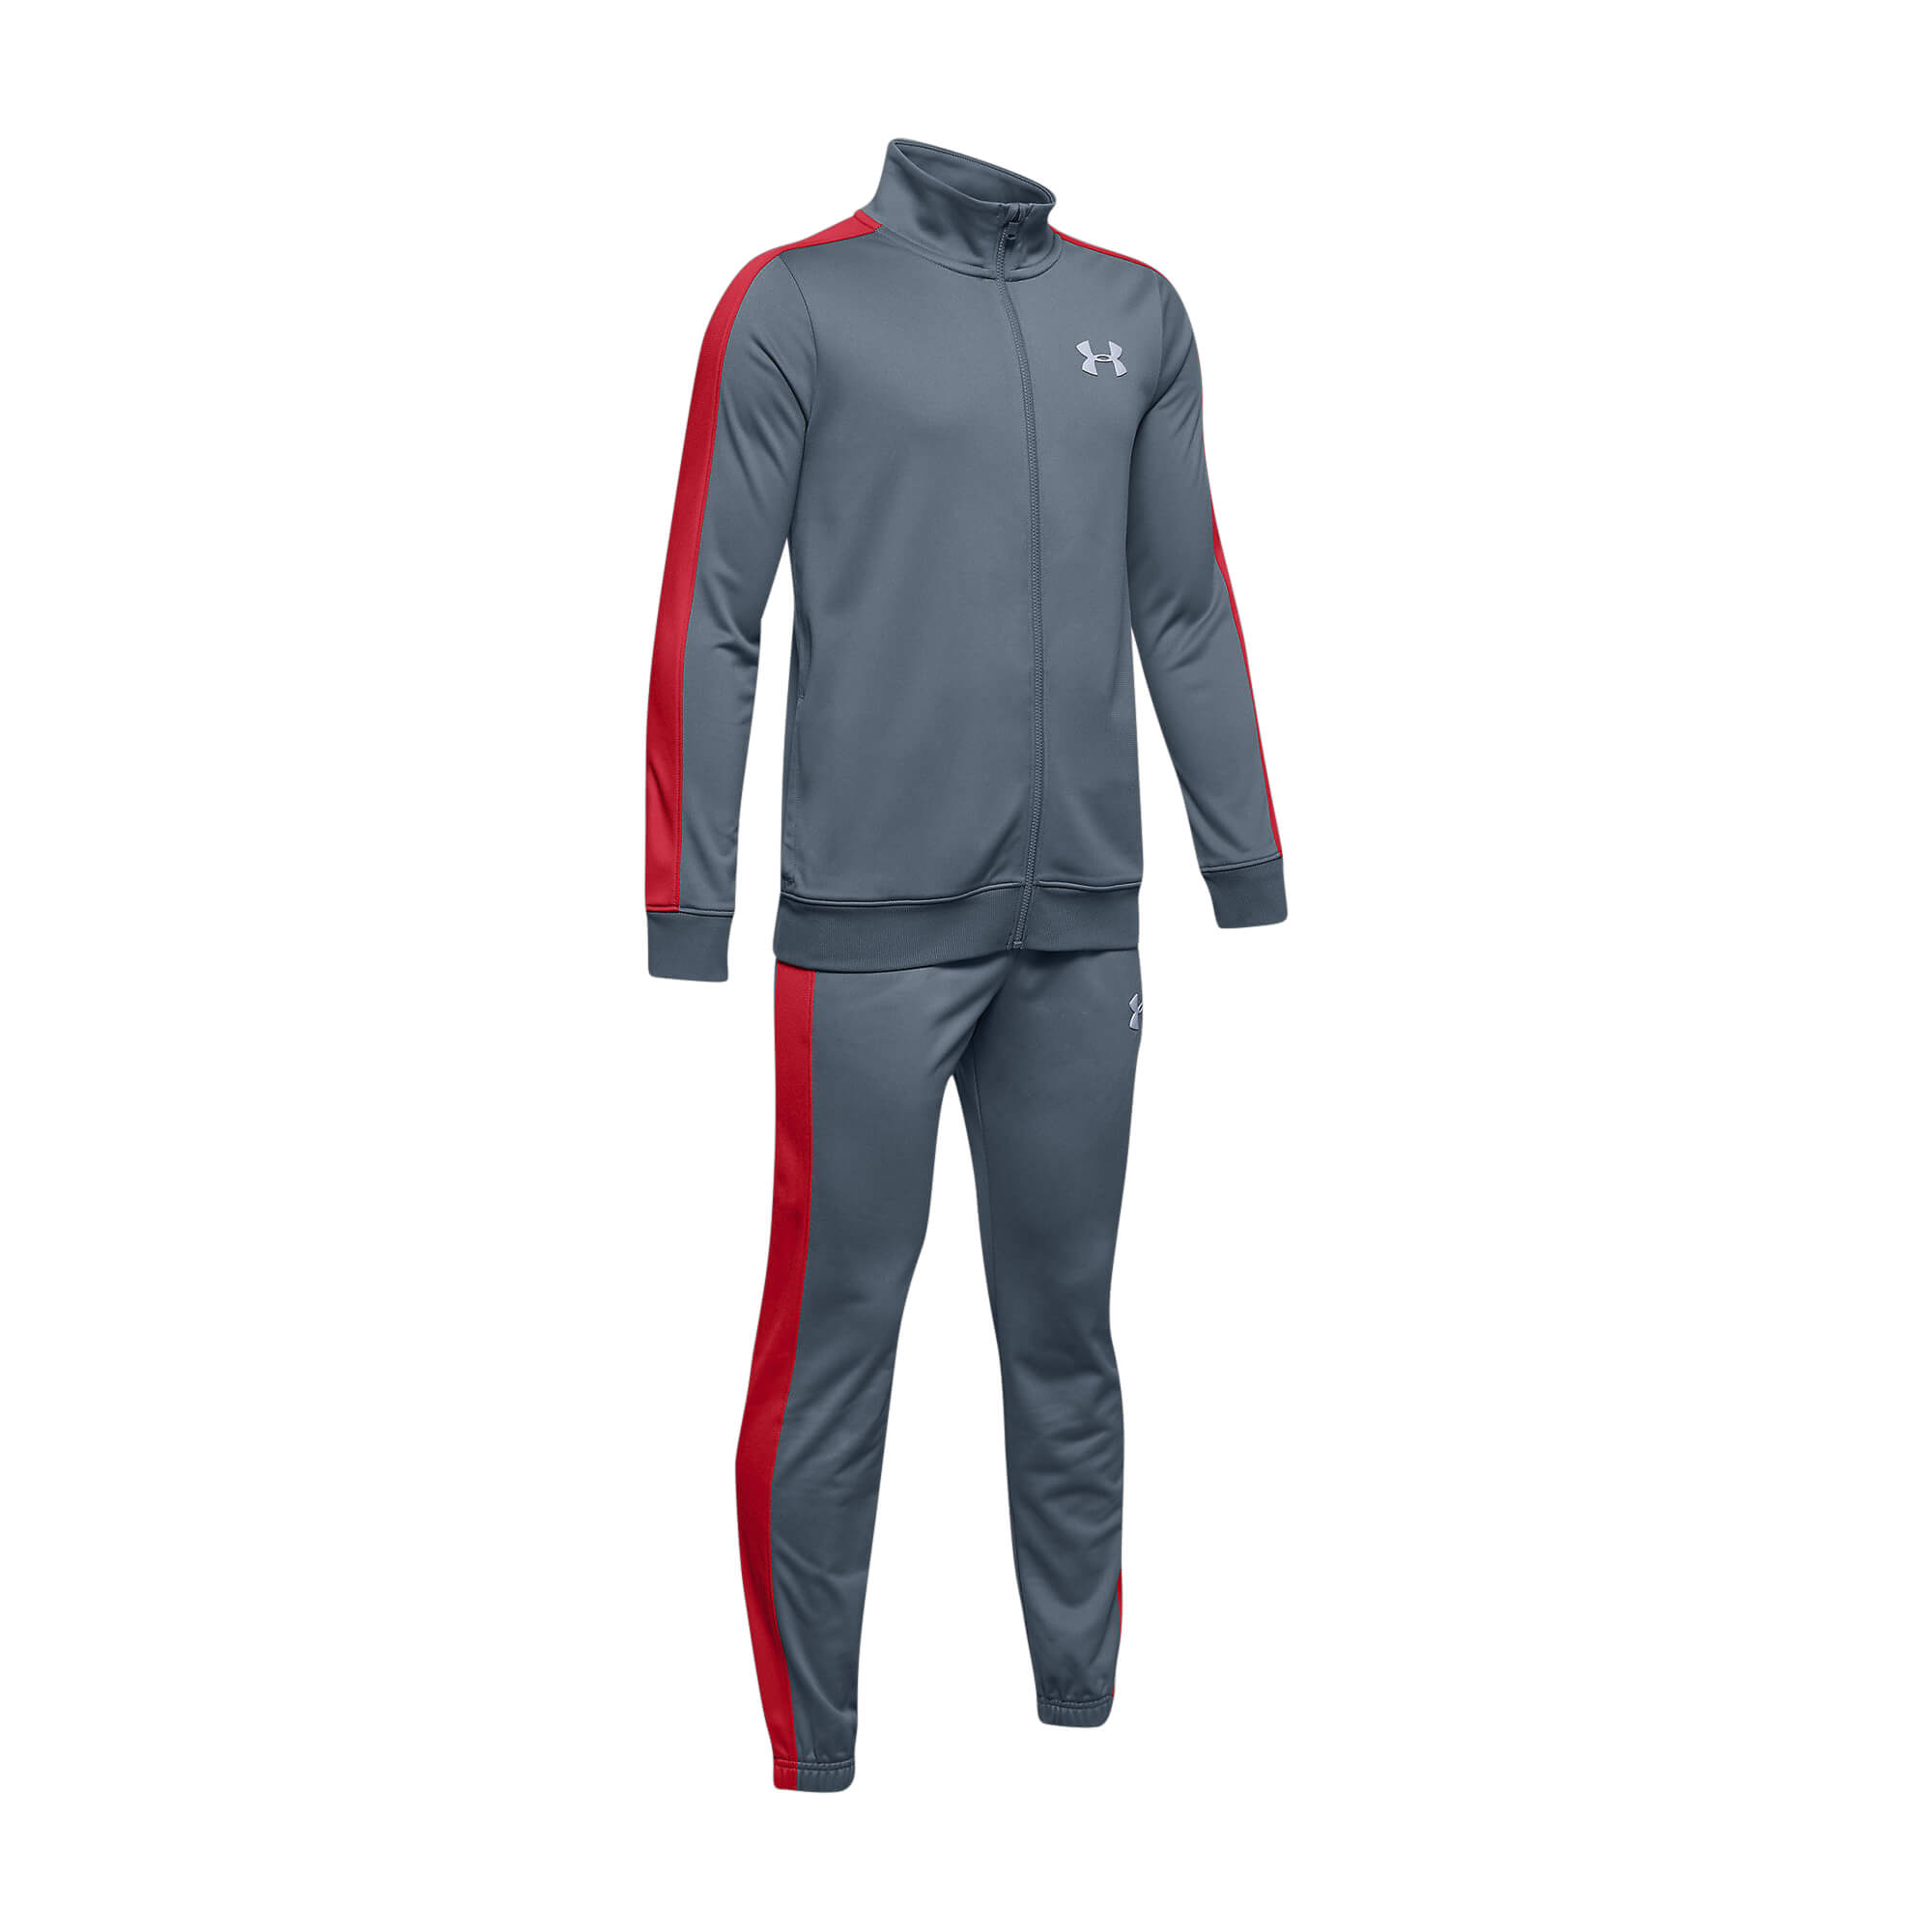 Knit Track Suit imagine produs